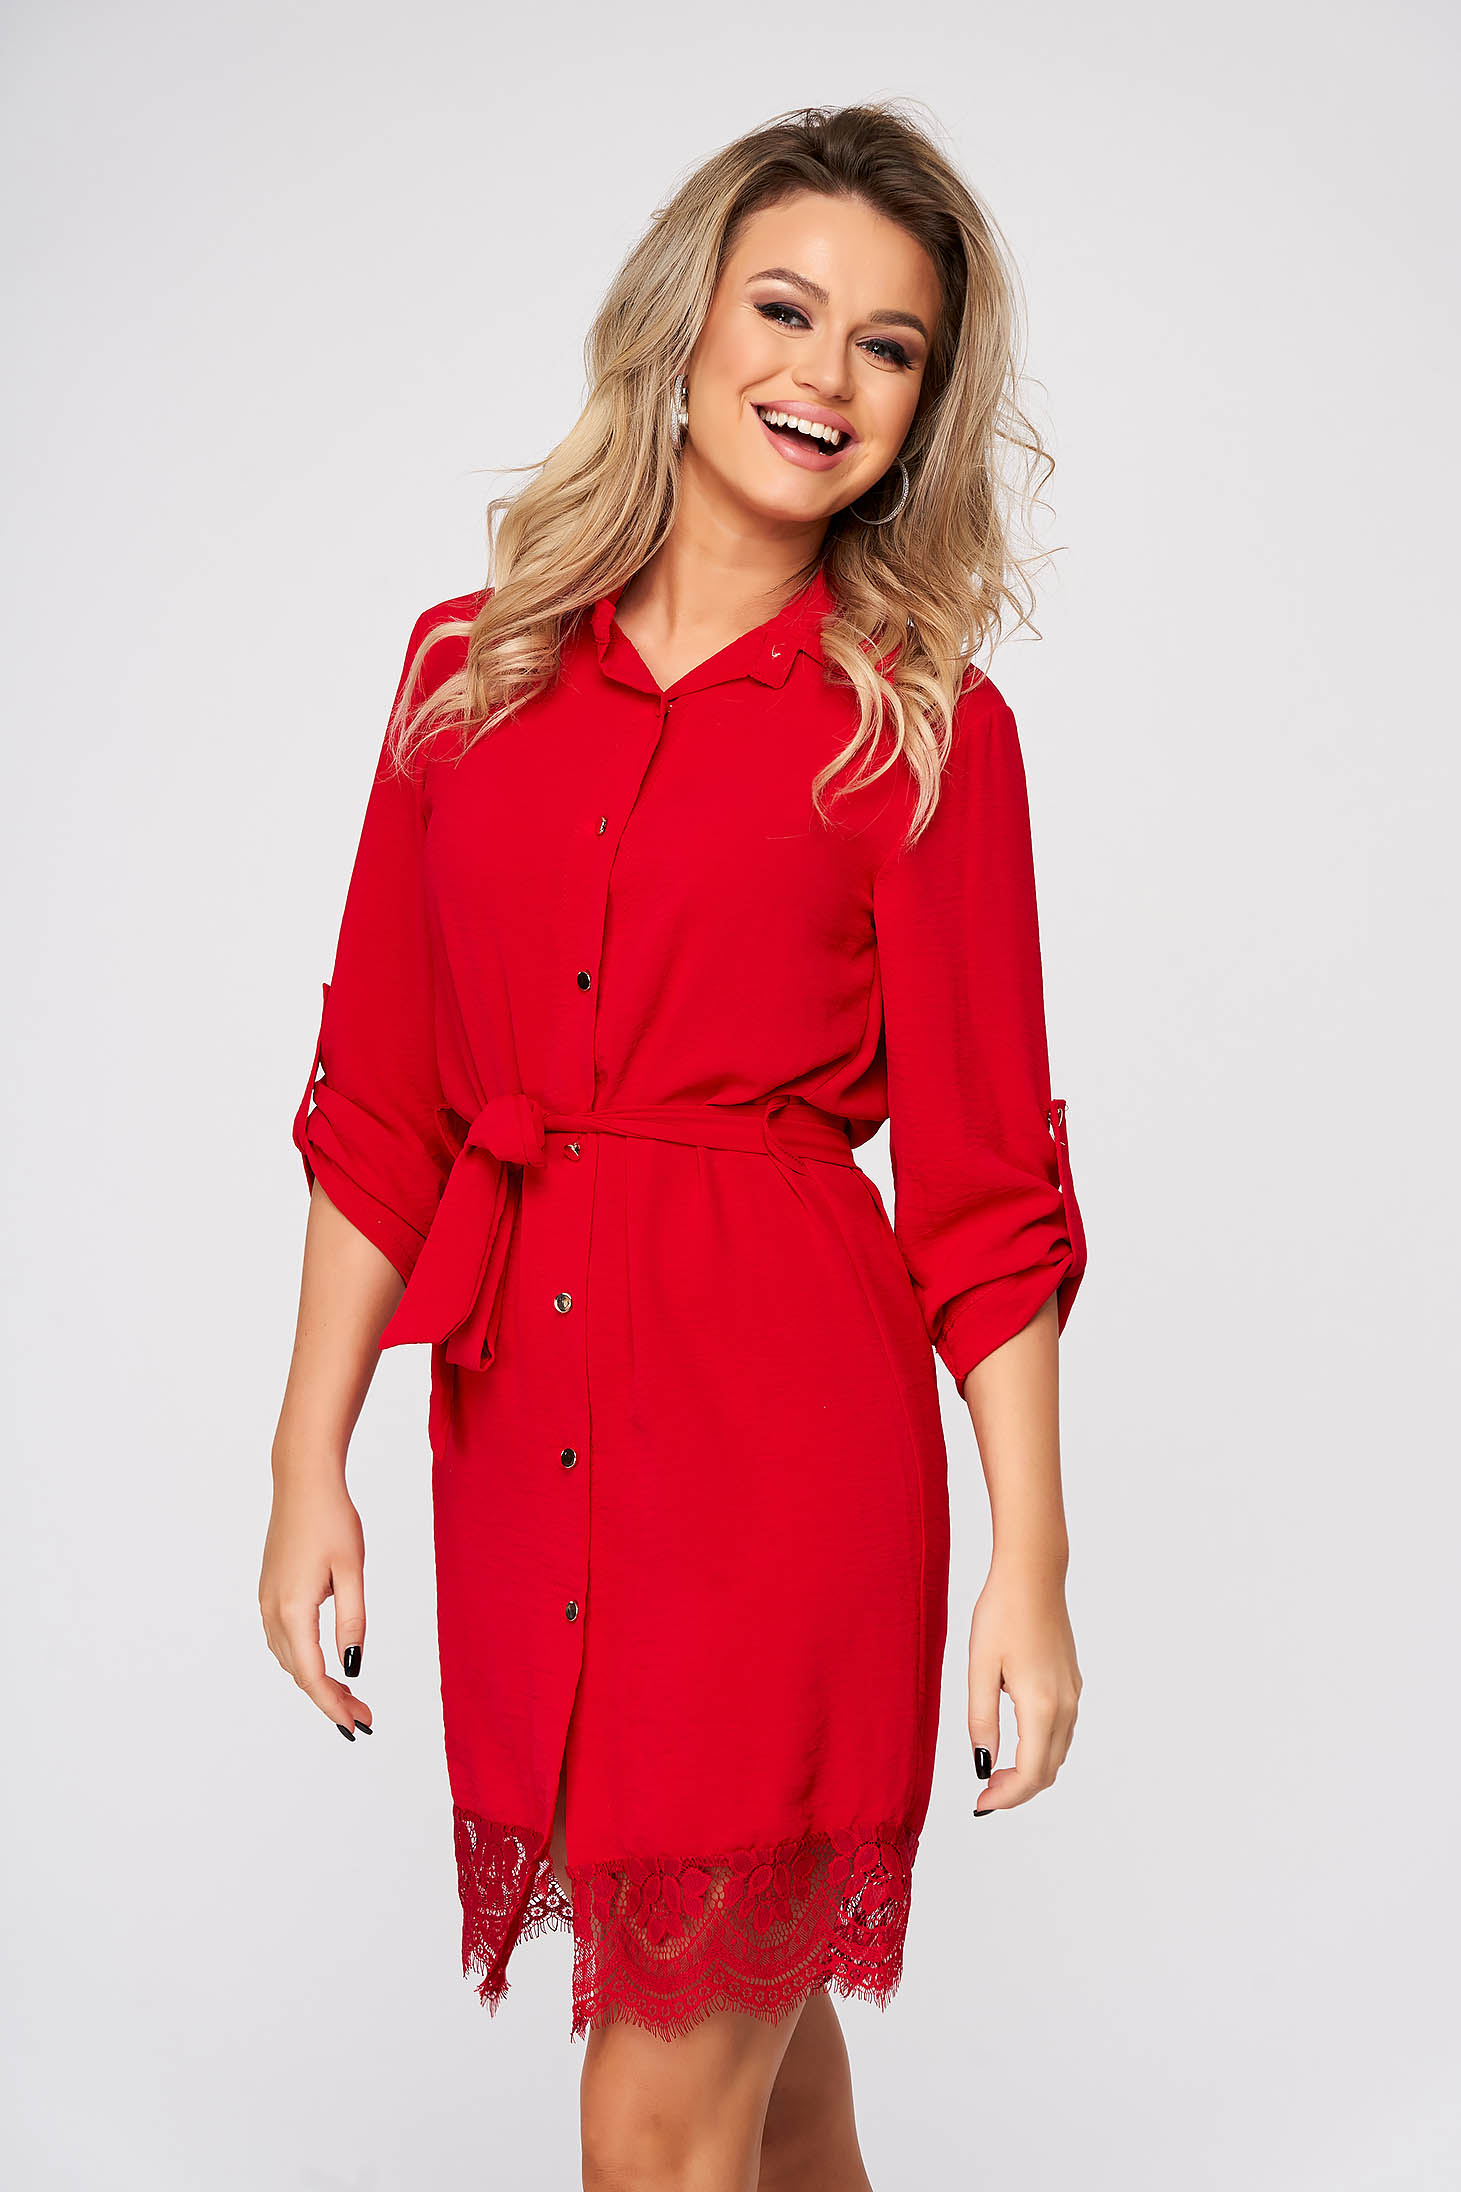 Red dress short cut daily straight with lace details thin fabric